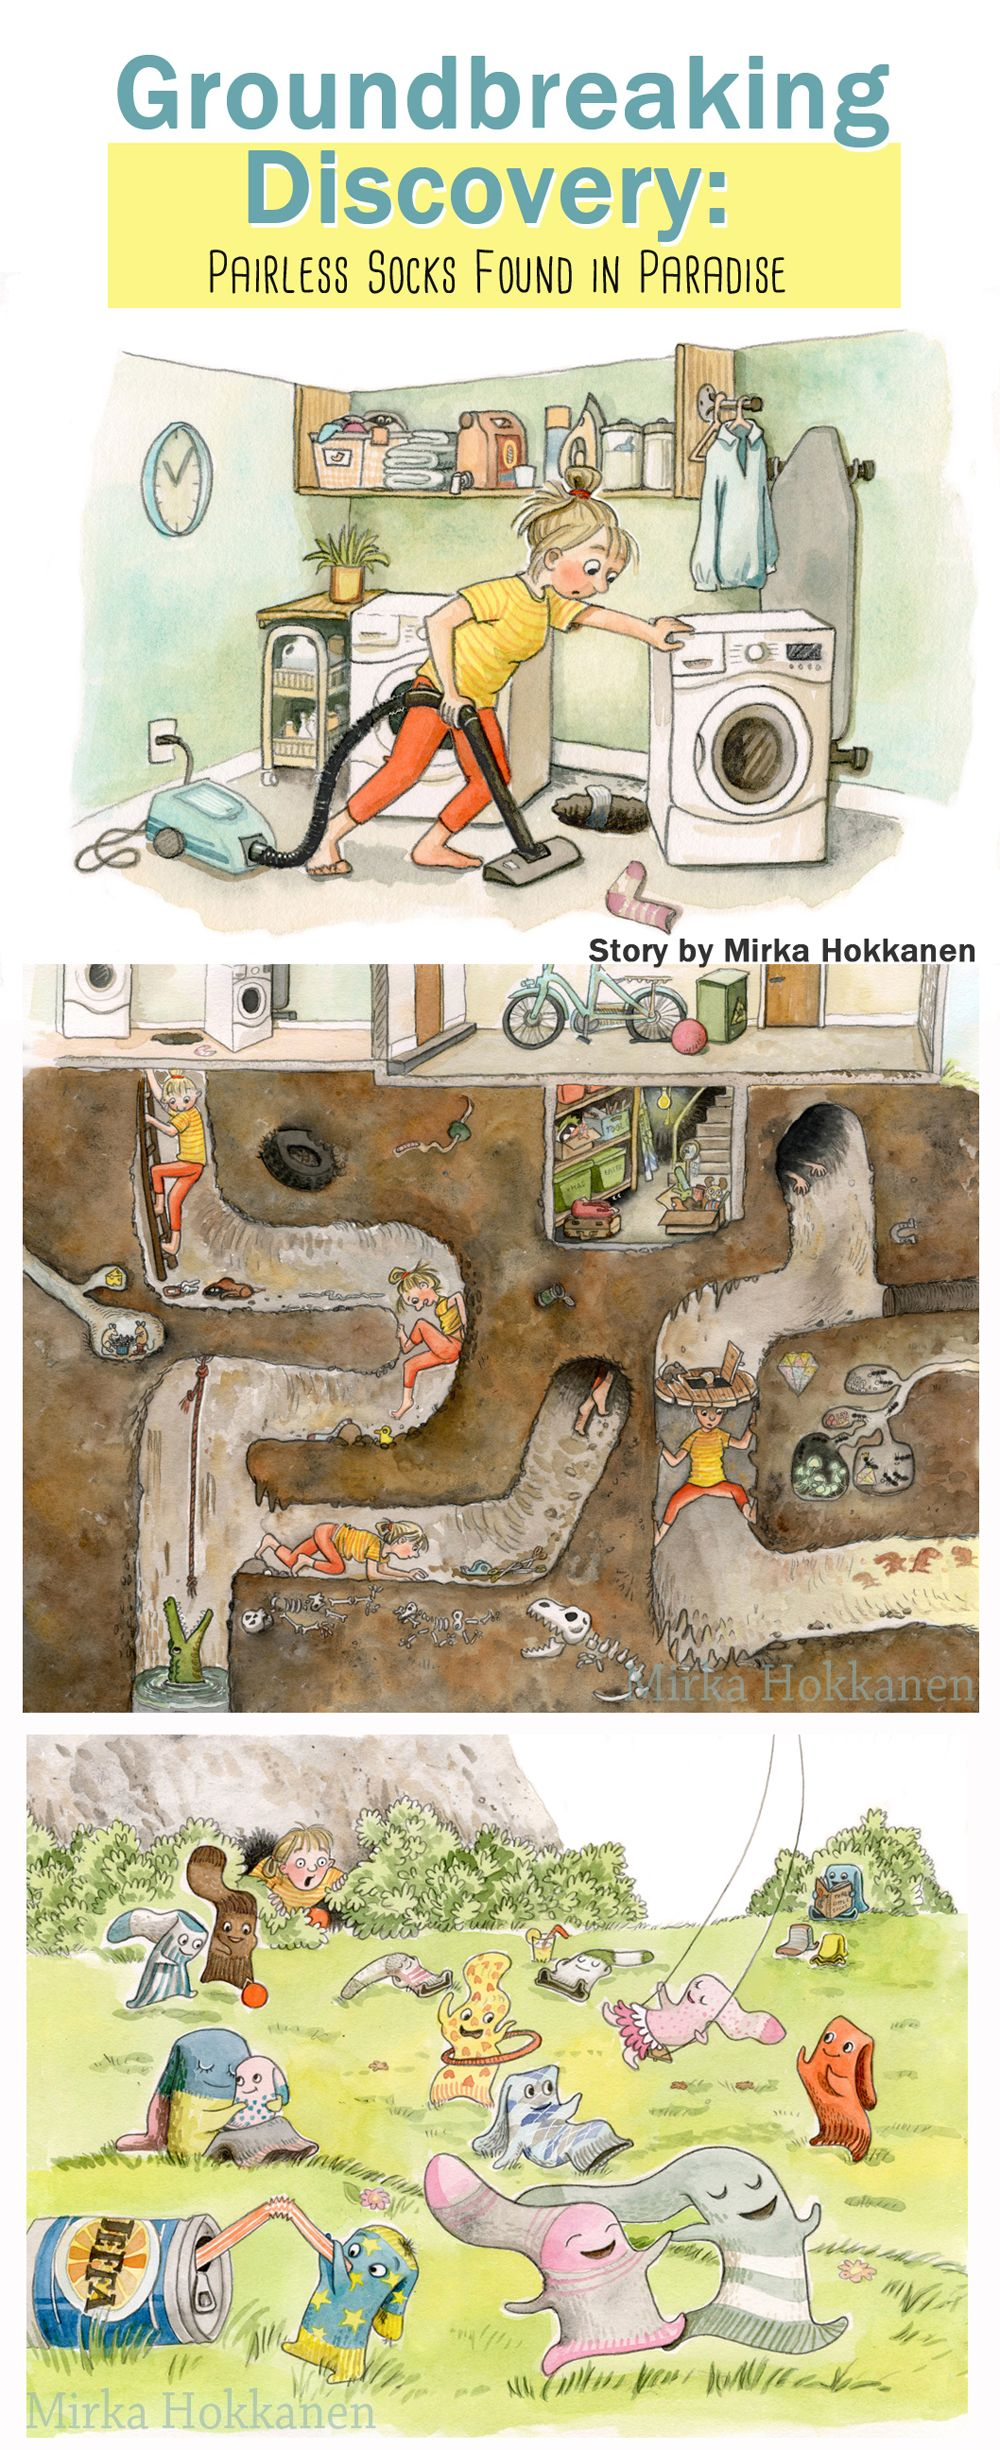 Discovery of the Century The secret life of socks revealed.  Watercolor and pencil illustrations by Mirka Hokkanen.  See portfolio at /portfolio.